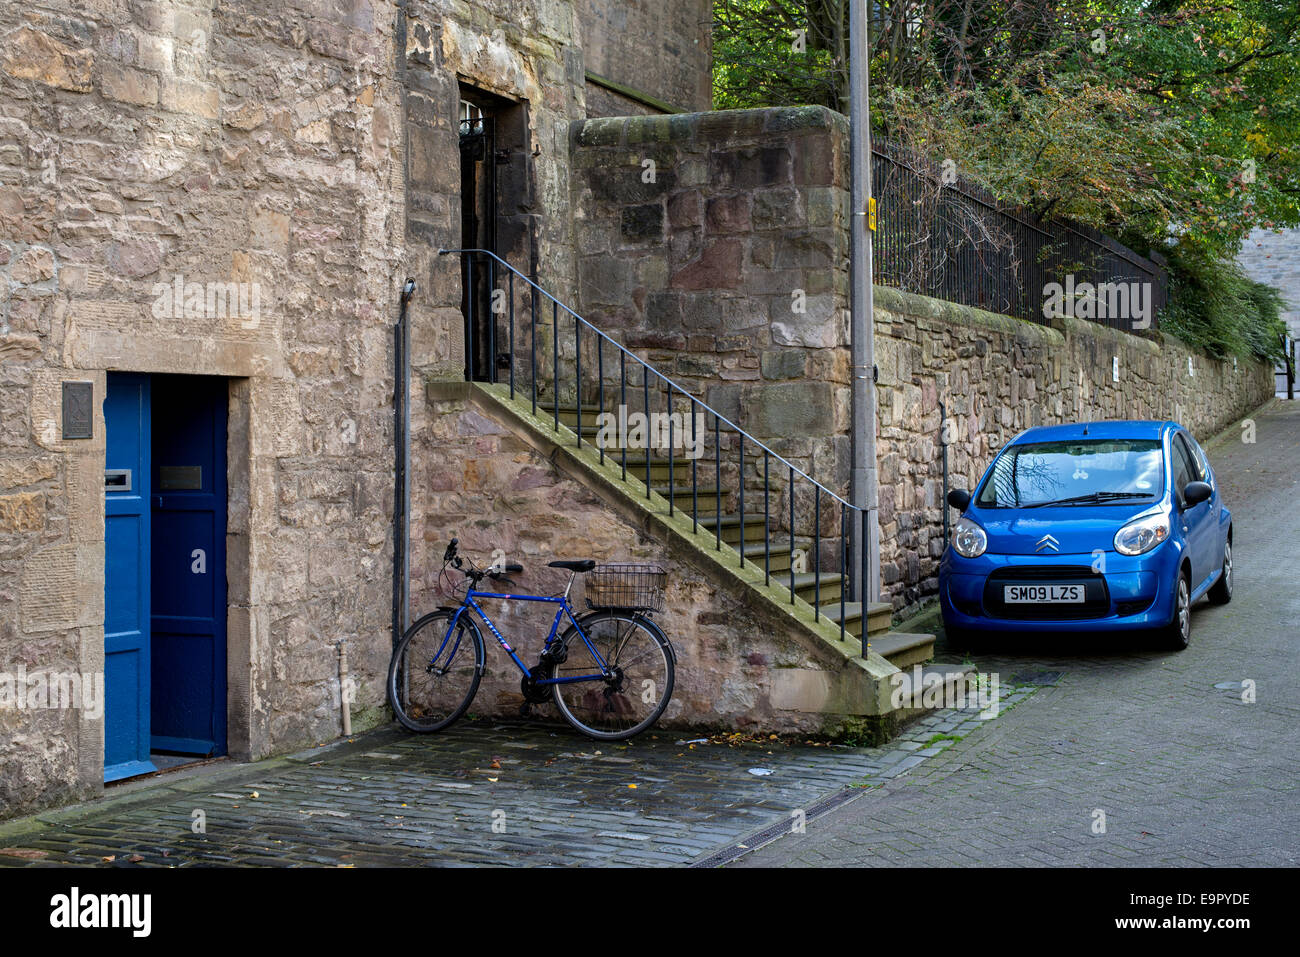 A chance find, three blue objects: a door, a bicycle and a motorcar in New Skinner's Close just off the Royal - Stock Image